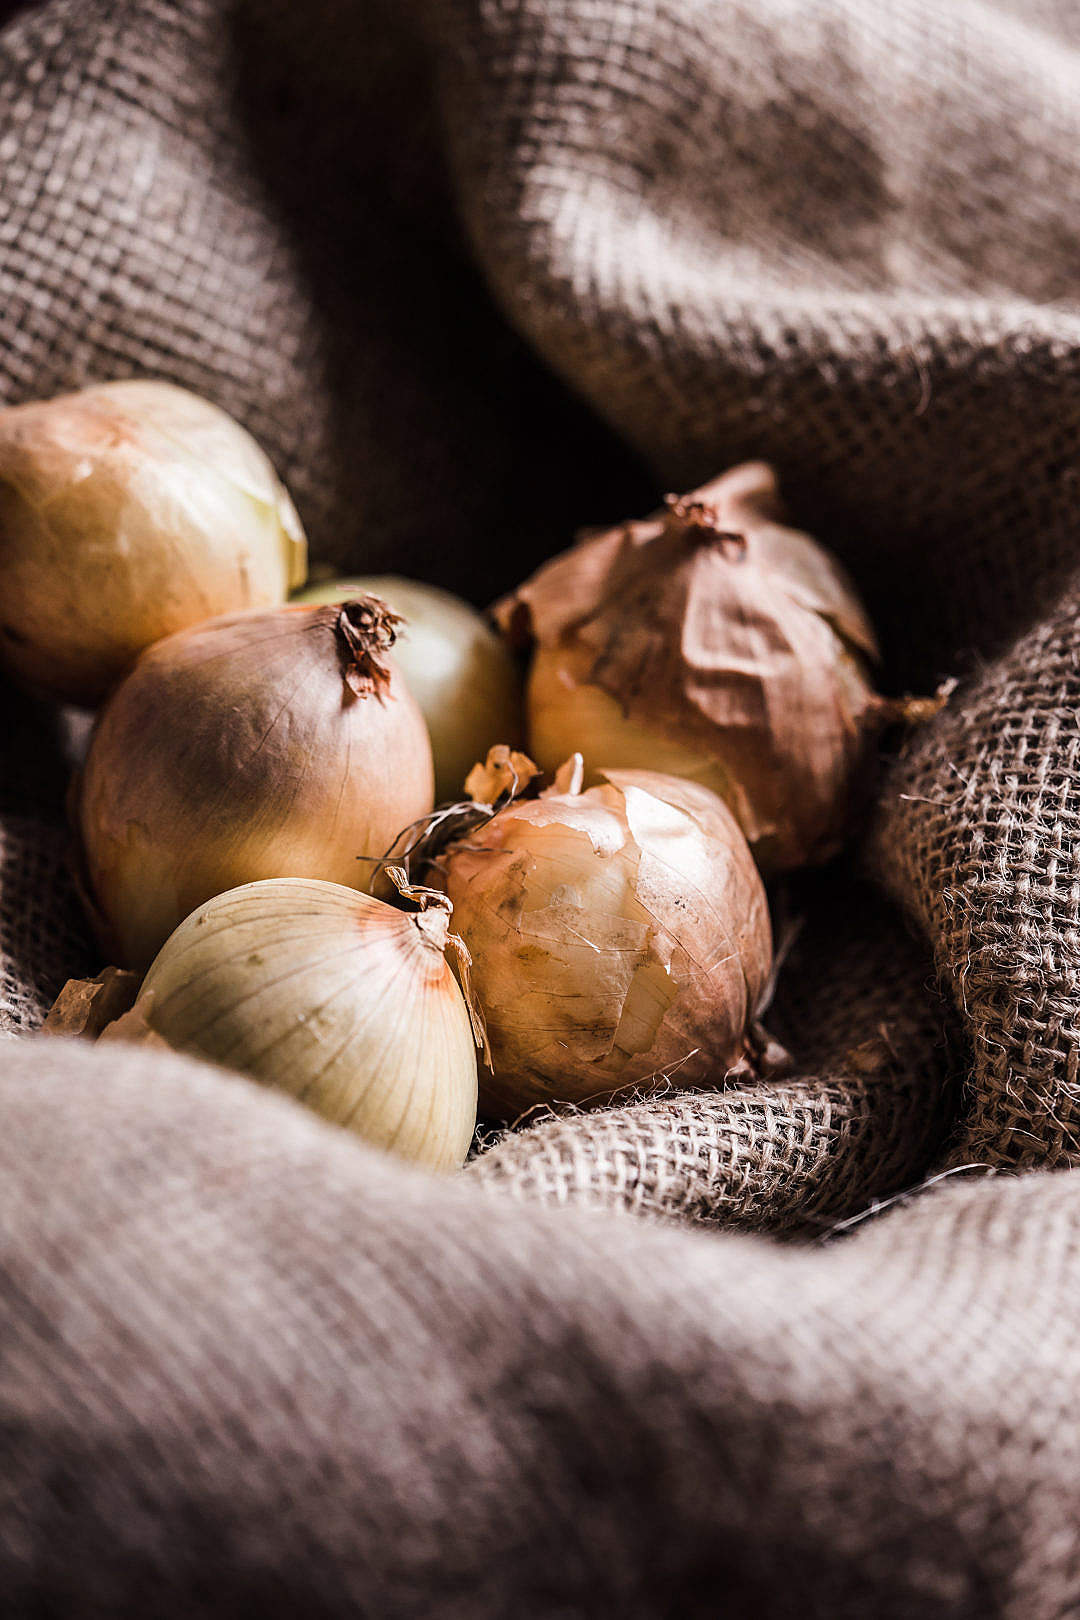 Download Onions in Sack Vertical FREE Stock Photo